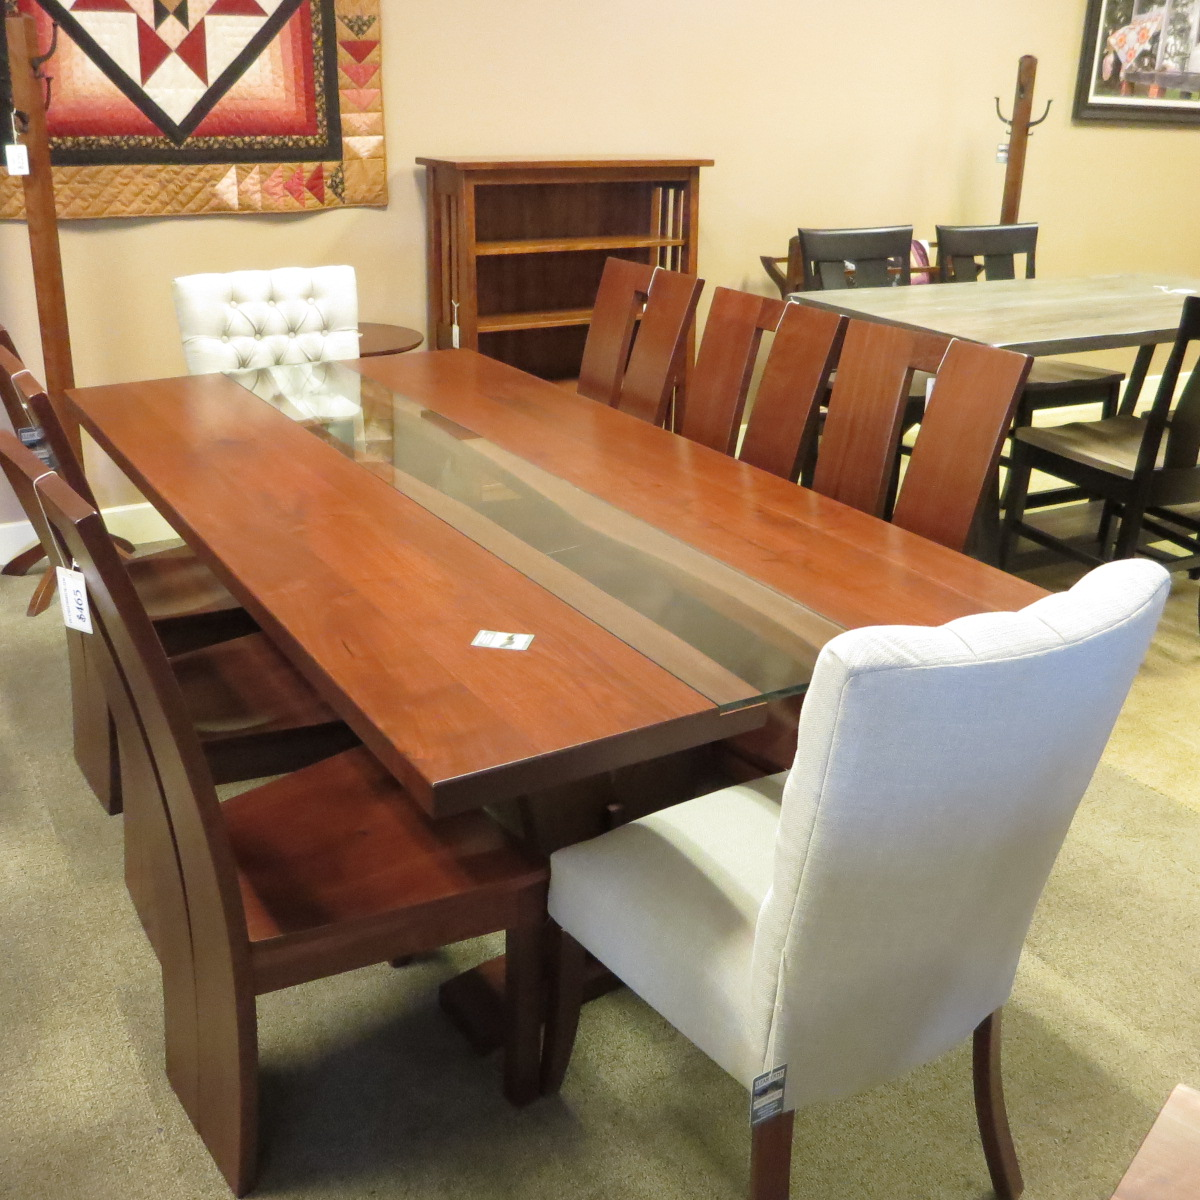 River Table Live edge on the inside with 8 chairs